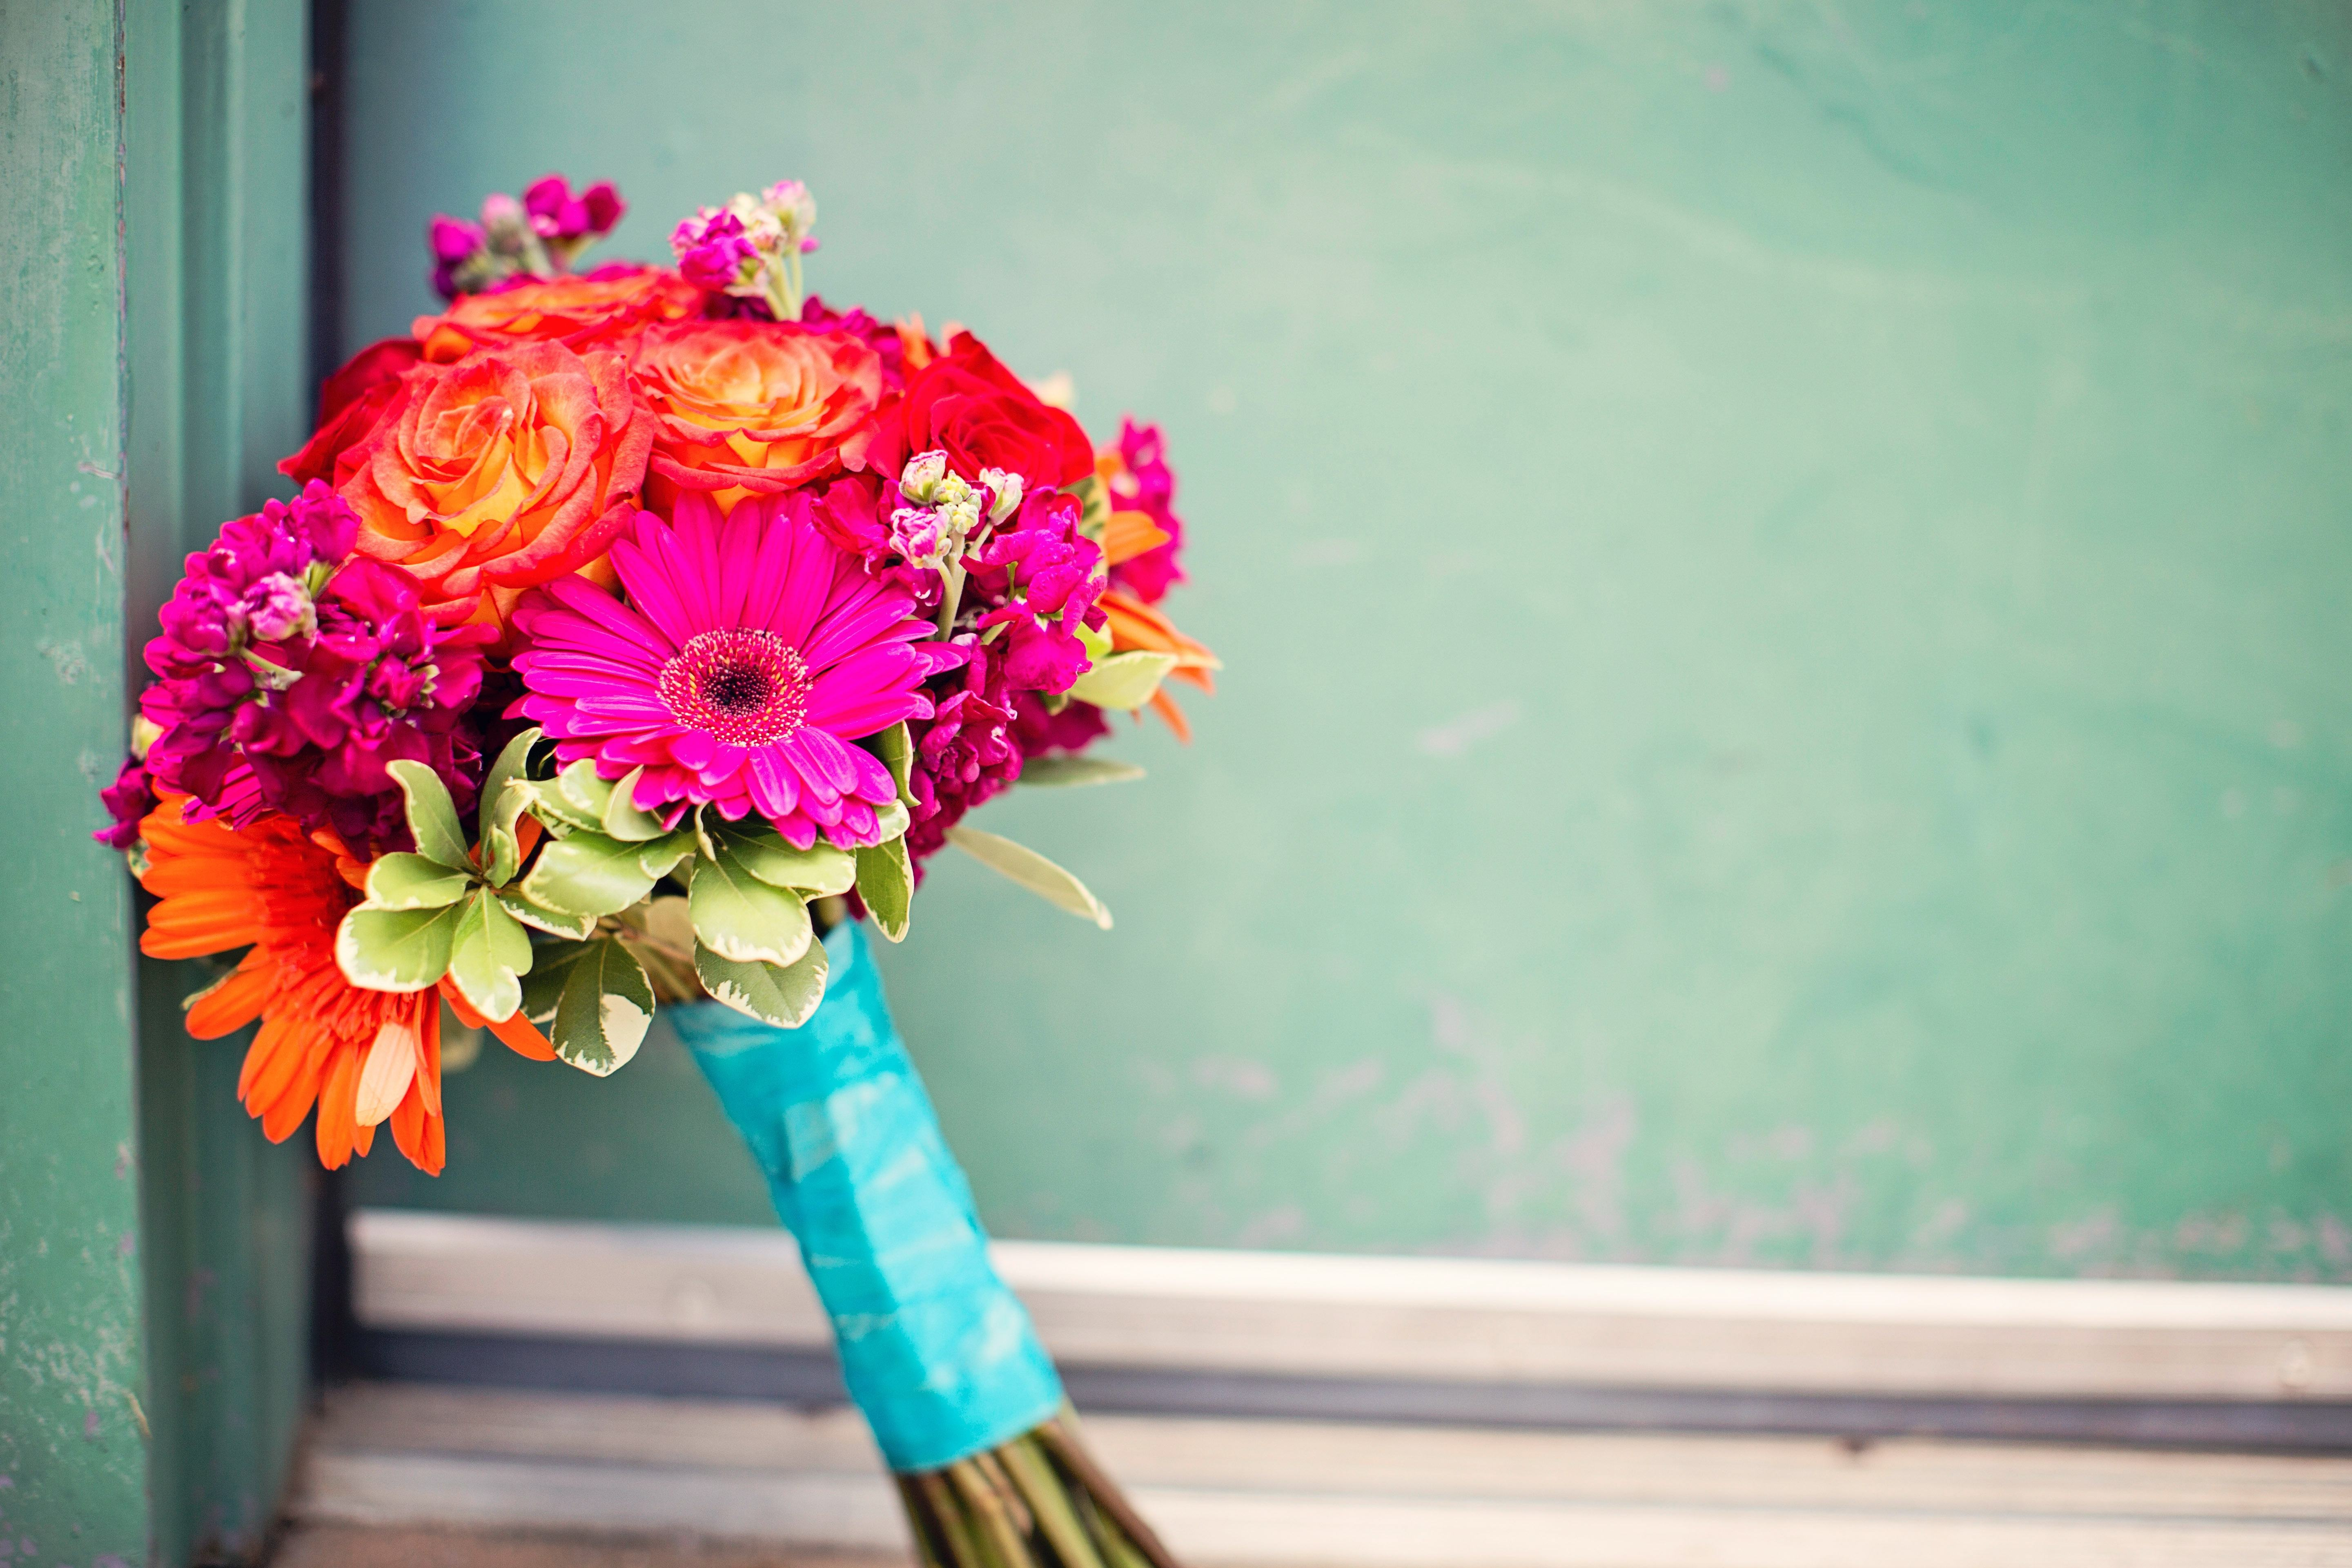 Real flower background images clip royalty free Real Flower Backgrounds - WallpaperPulse clip royalty free